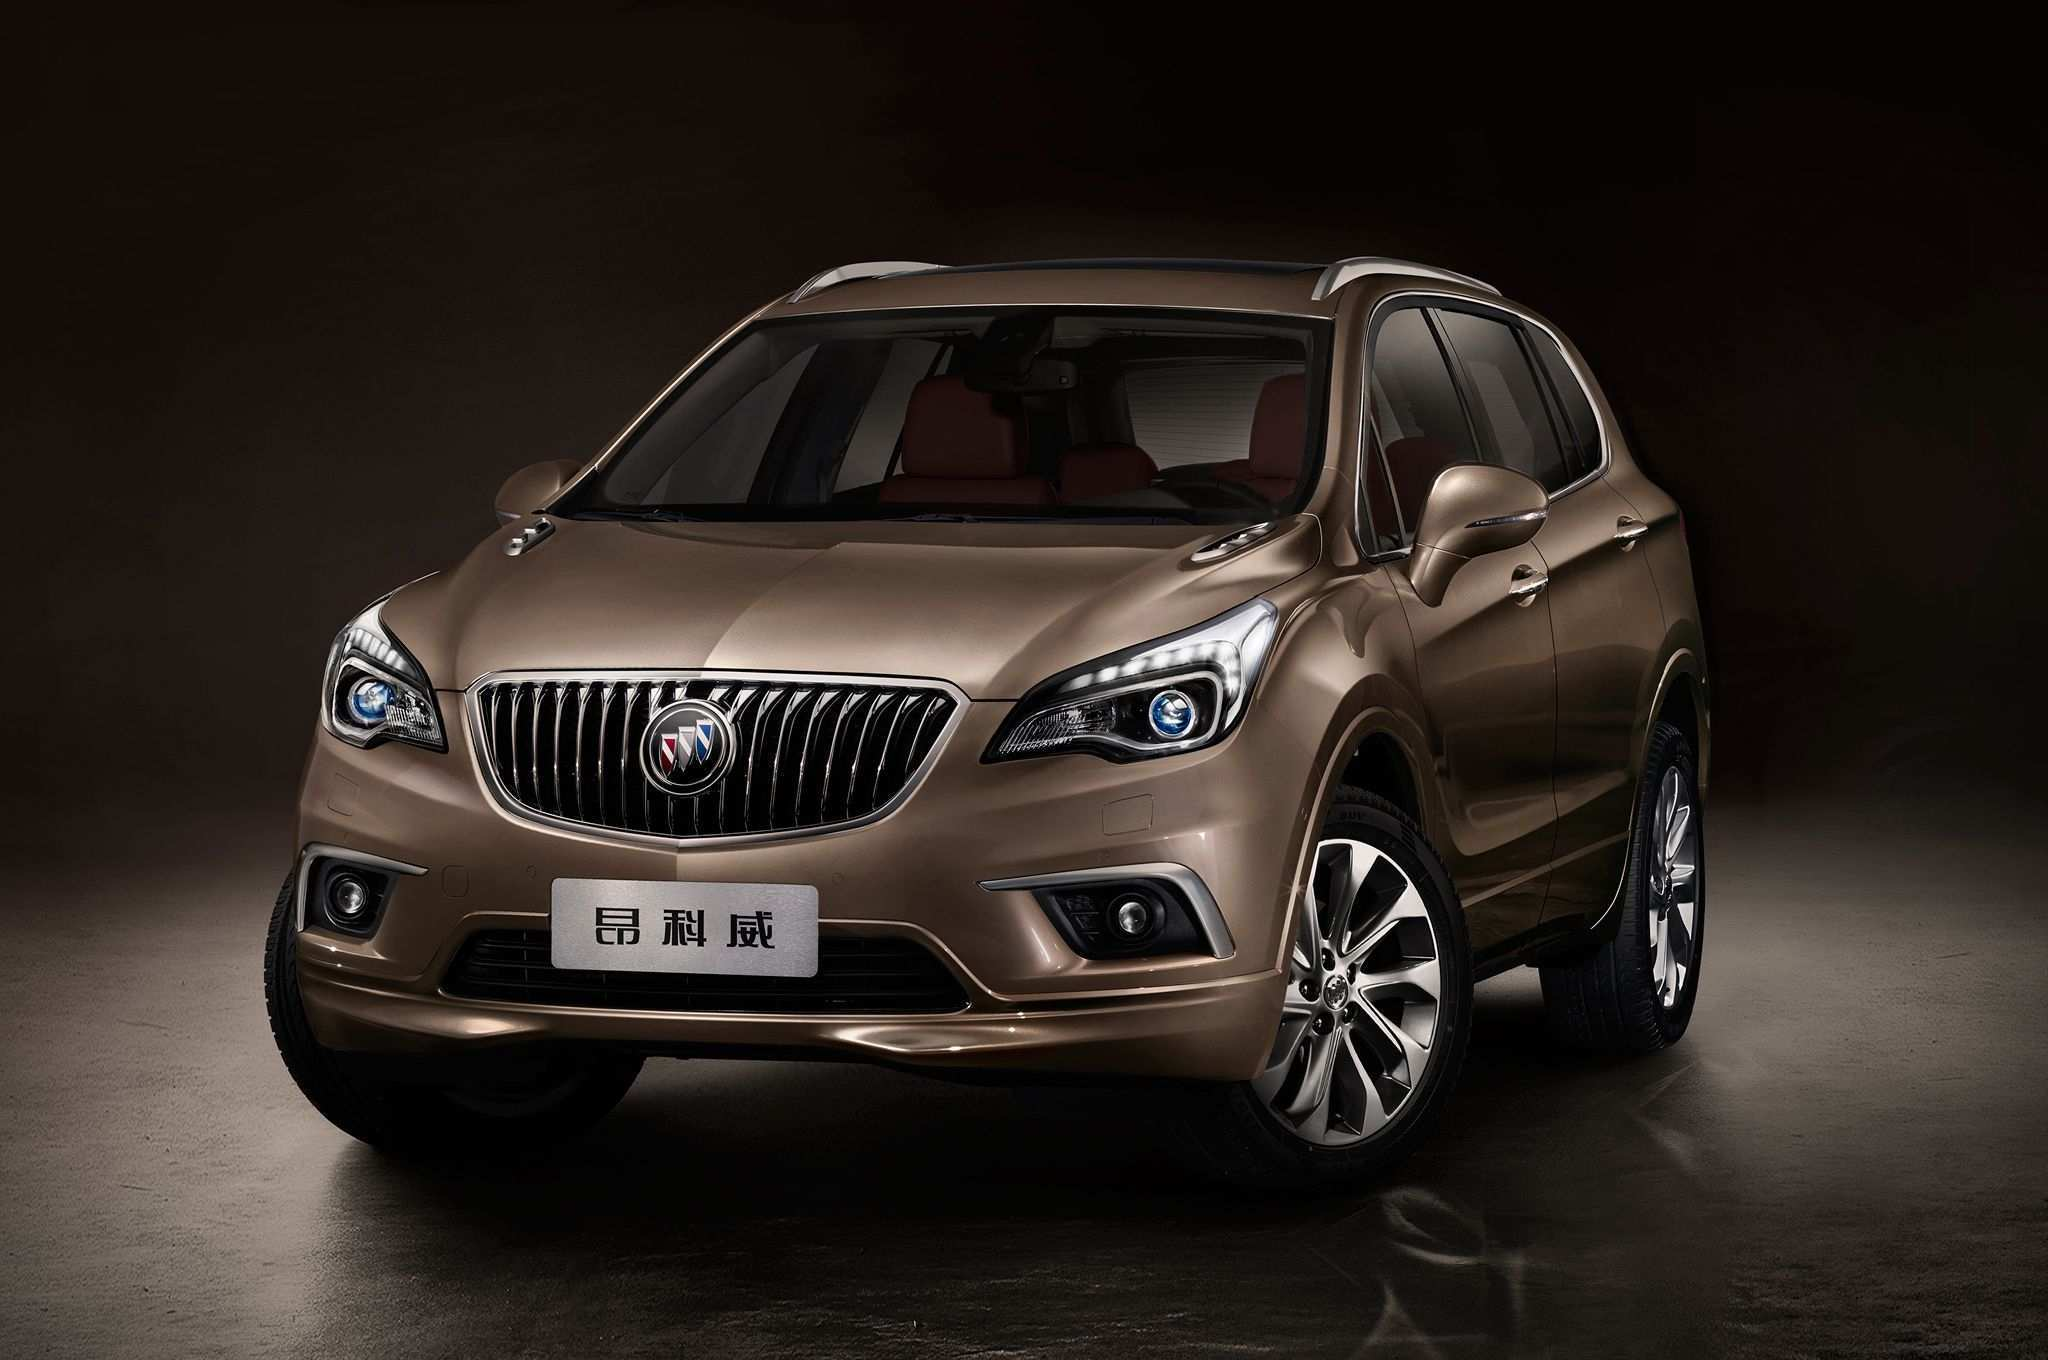 43 New New Buick Lineup 2019 Release Date Picture for New Buick Lineup 2019 Release Date